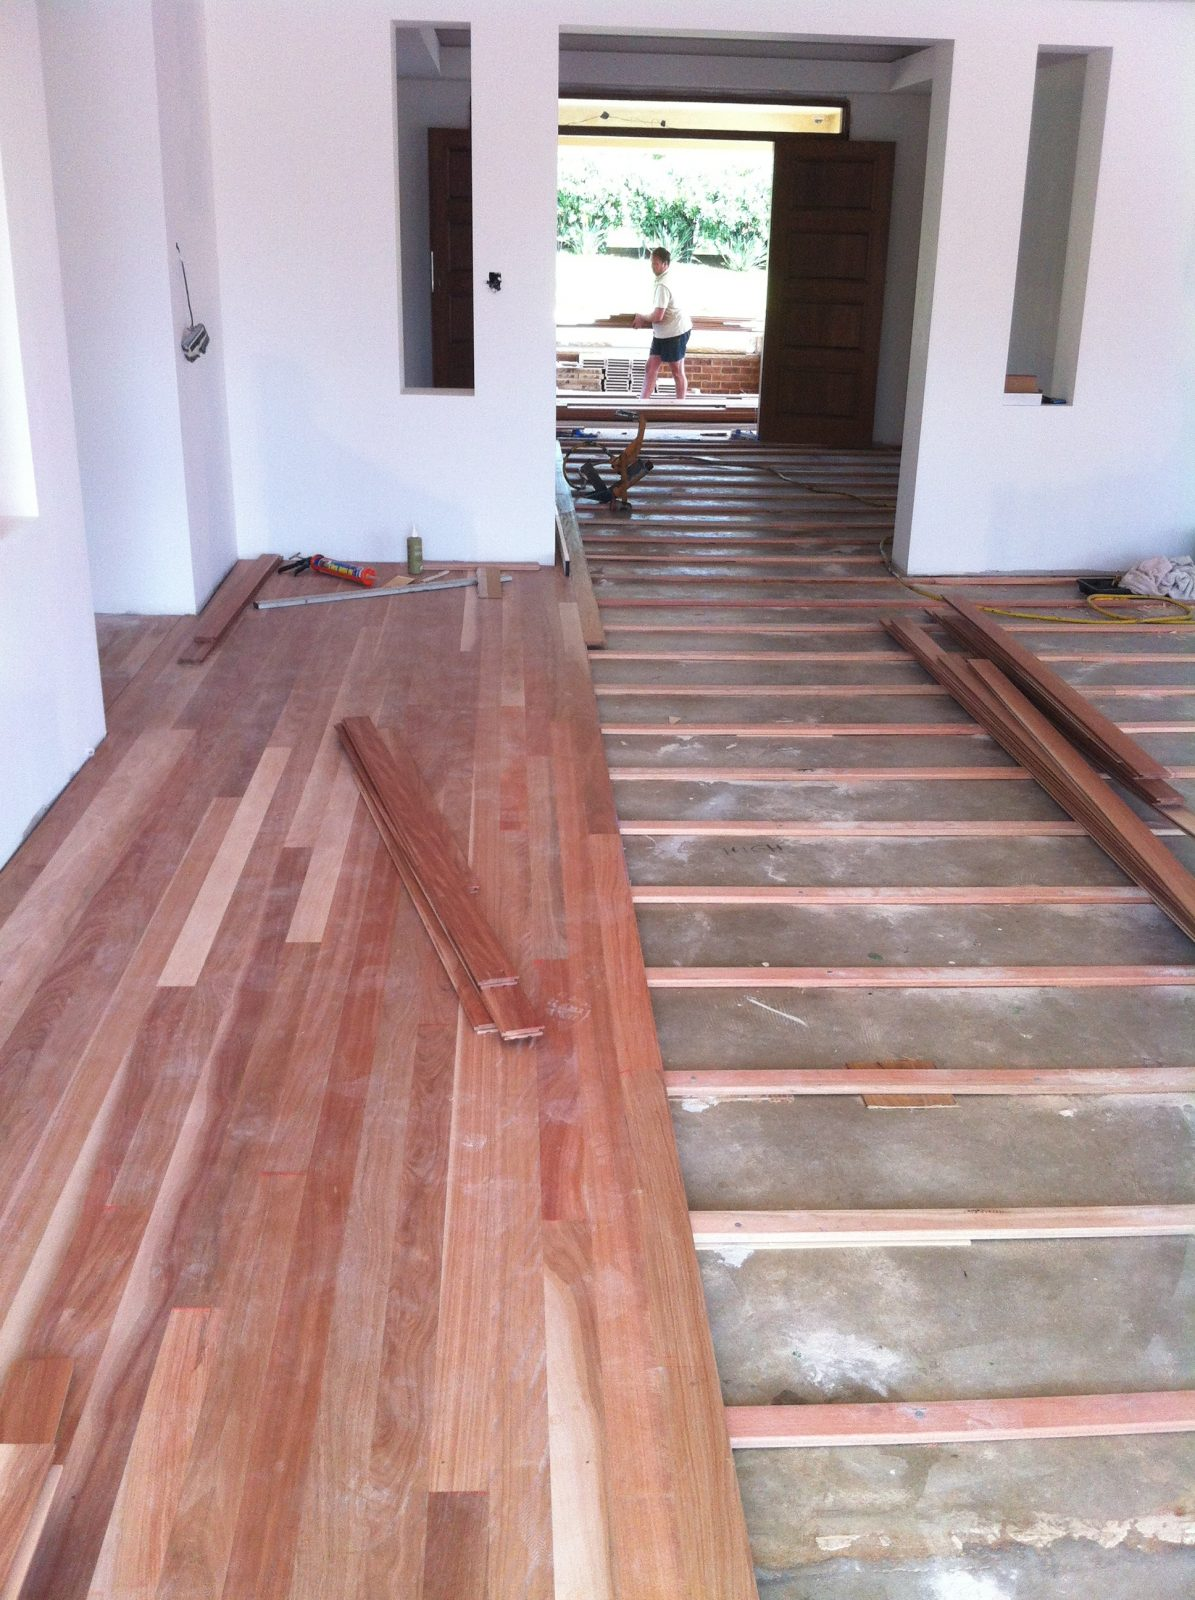 timber flooring being laid over a concrete slab by Australian Hardwood timber flooring specialists Timber Floors Pty Ltd